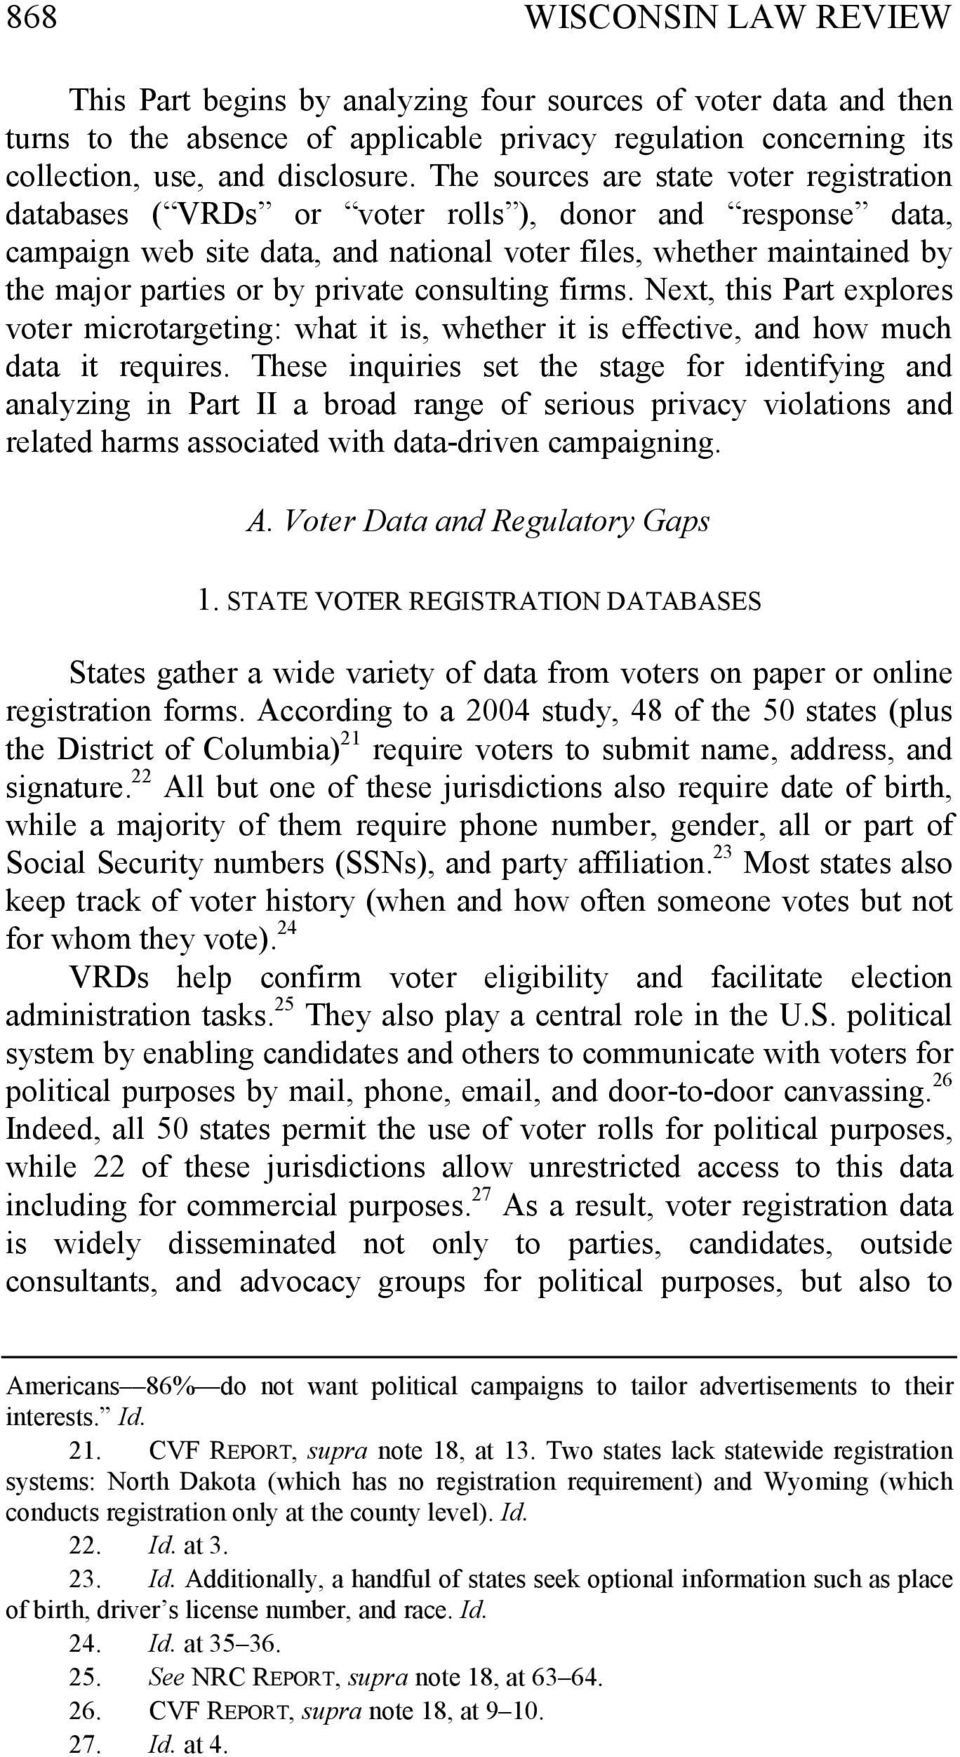 private consulting firms. Next, this Part explores voter microtargeting: what it is, whether it is effective, and how much data it requires.